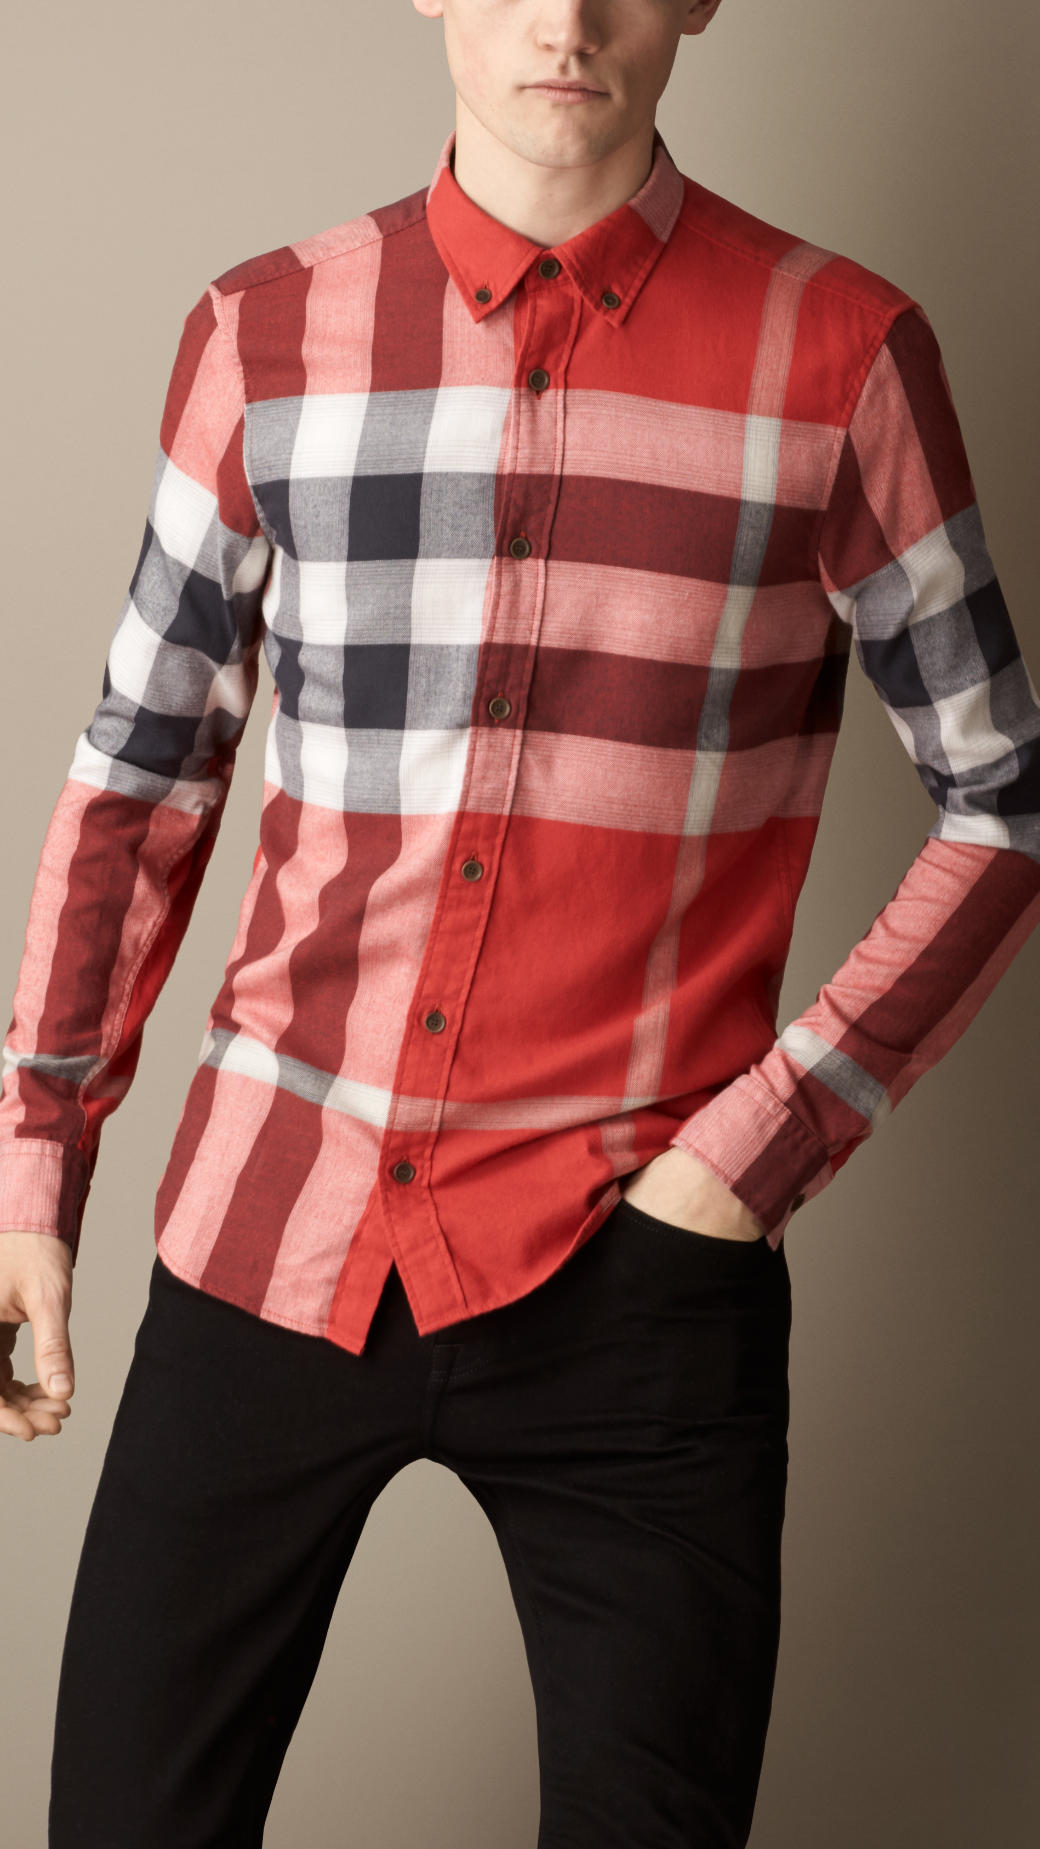 Burberry Exploded Check Flannel Shirt In Red For Men Lyst